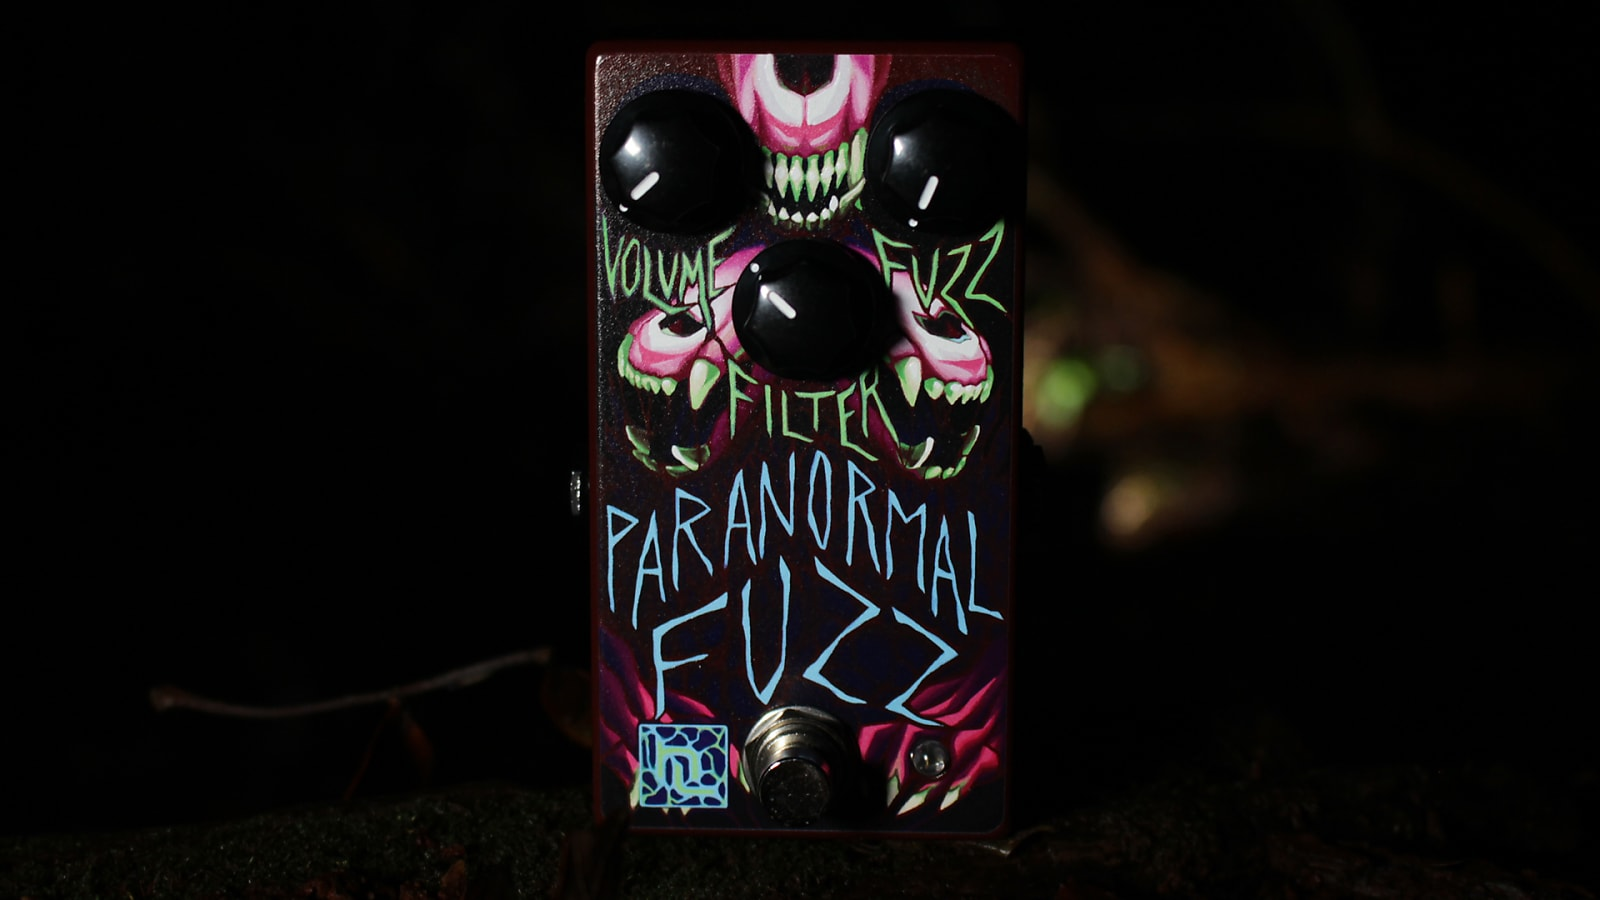 Haunted Labs Paranormal Fuzz V2 (Filtered Fuzz)